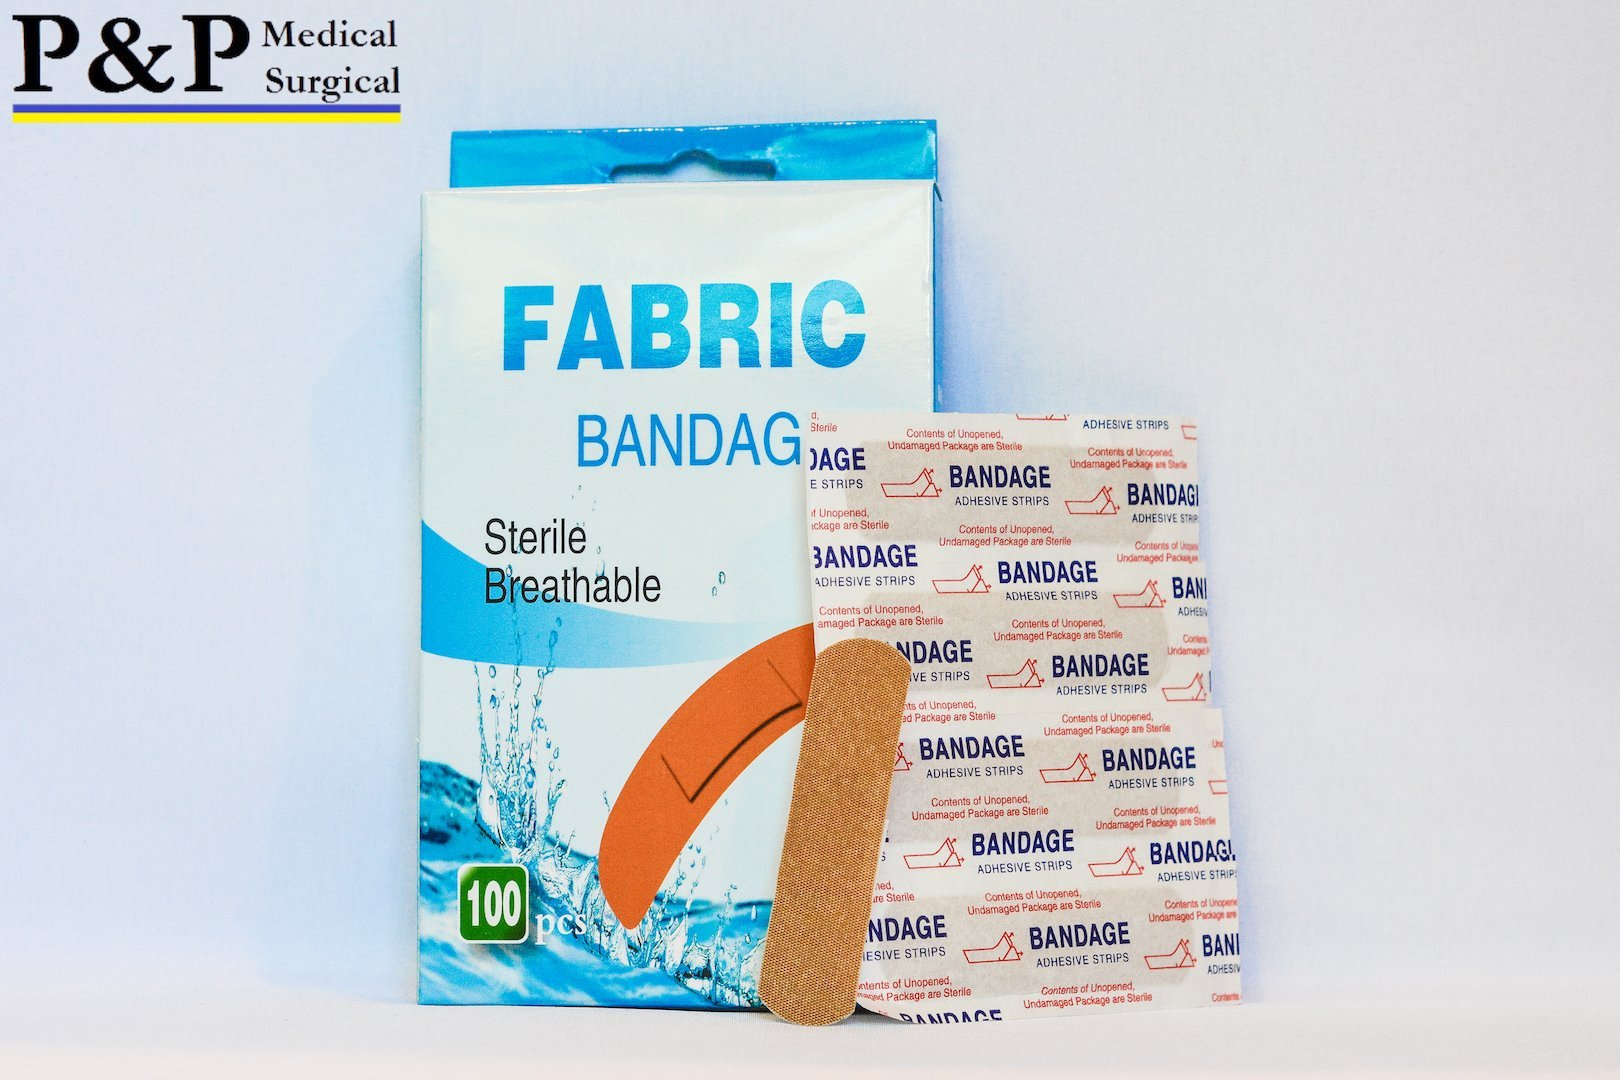 BAND AID STERILE FLEXIBLE SELF ADHESIVE BANDAGES_Skin color_1 Carton/100 Boxes/10000 Pieces_size 3/4x3 inches_Designed in USA by P&P Medical Surgical by P&P Medical Surgical